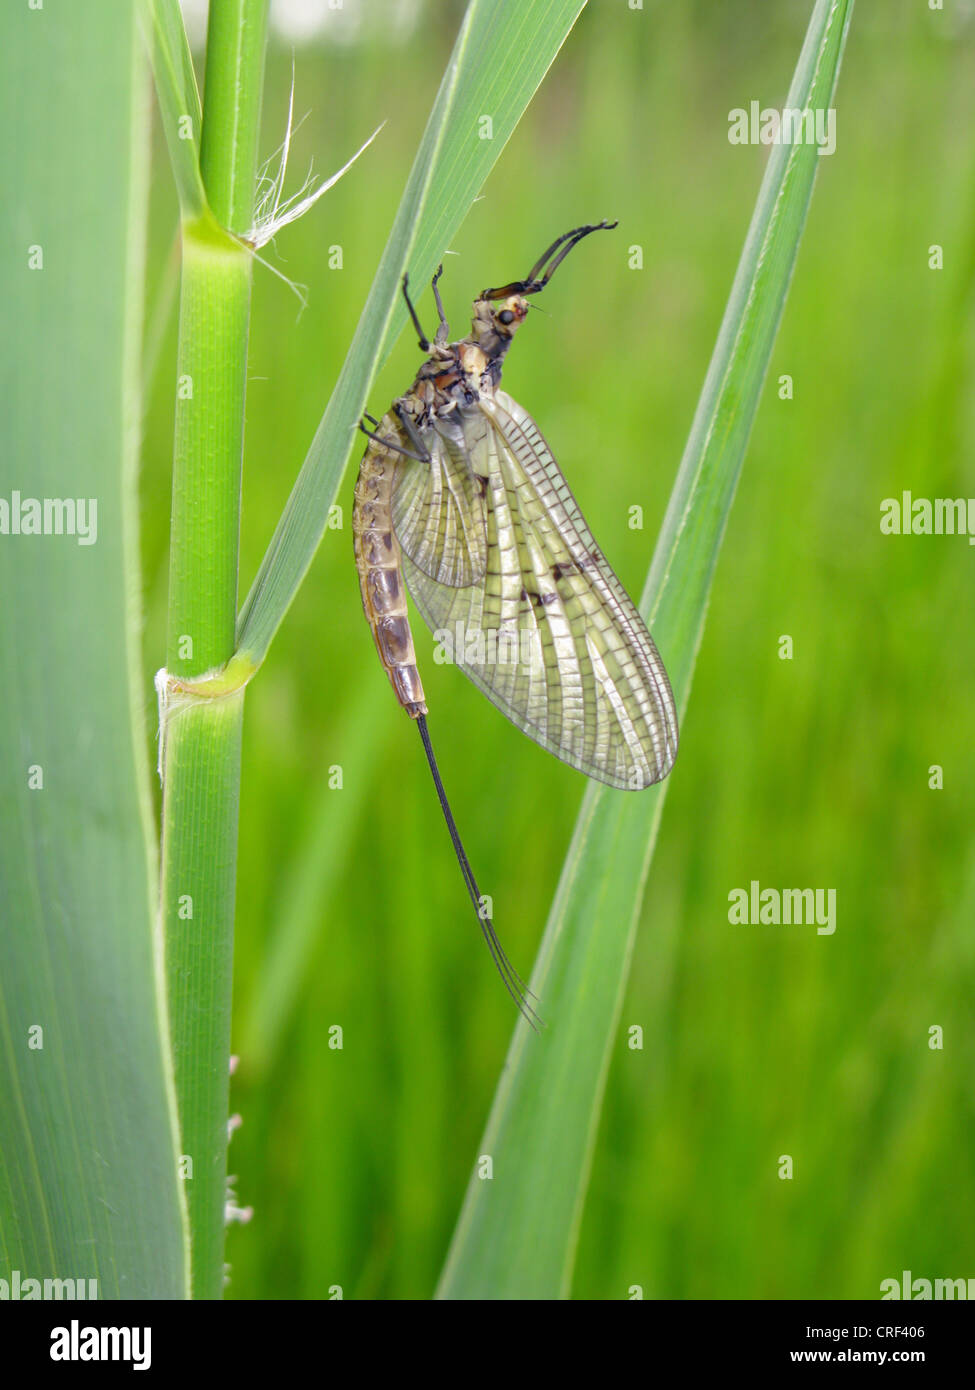 Mayfly (Ephemera cfr danica), imago seduta a pettine, in Germania, in Baviera Immagini Stock